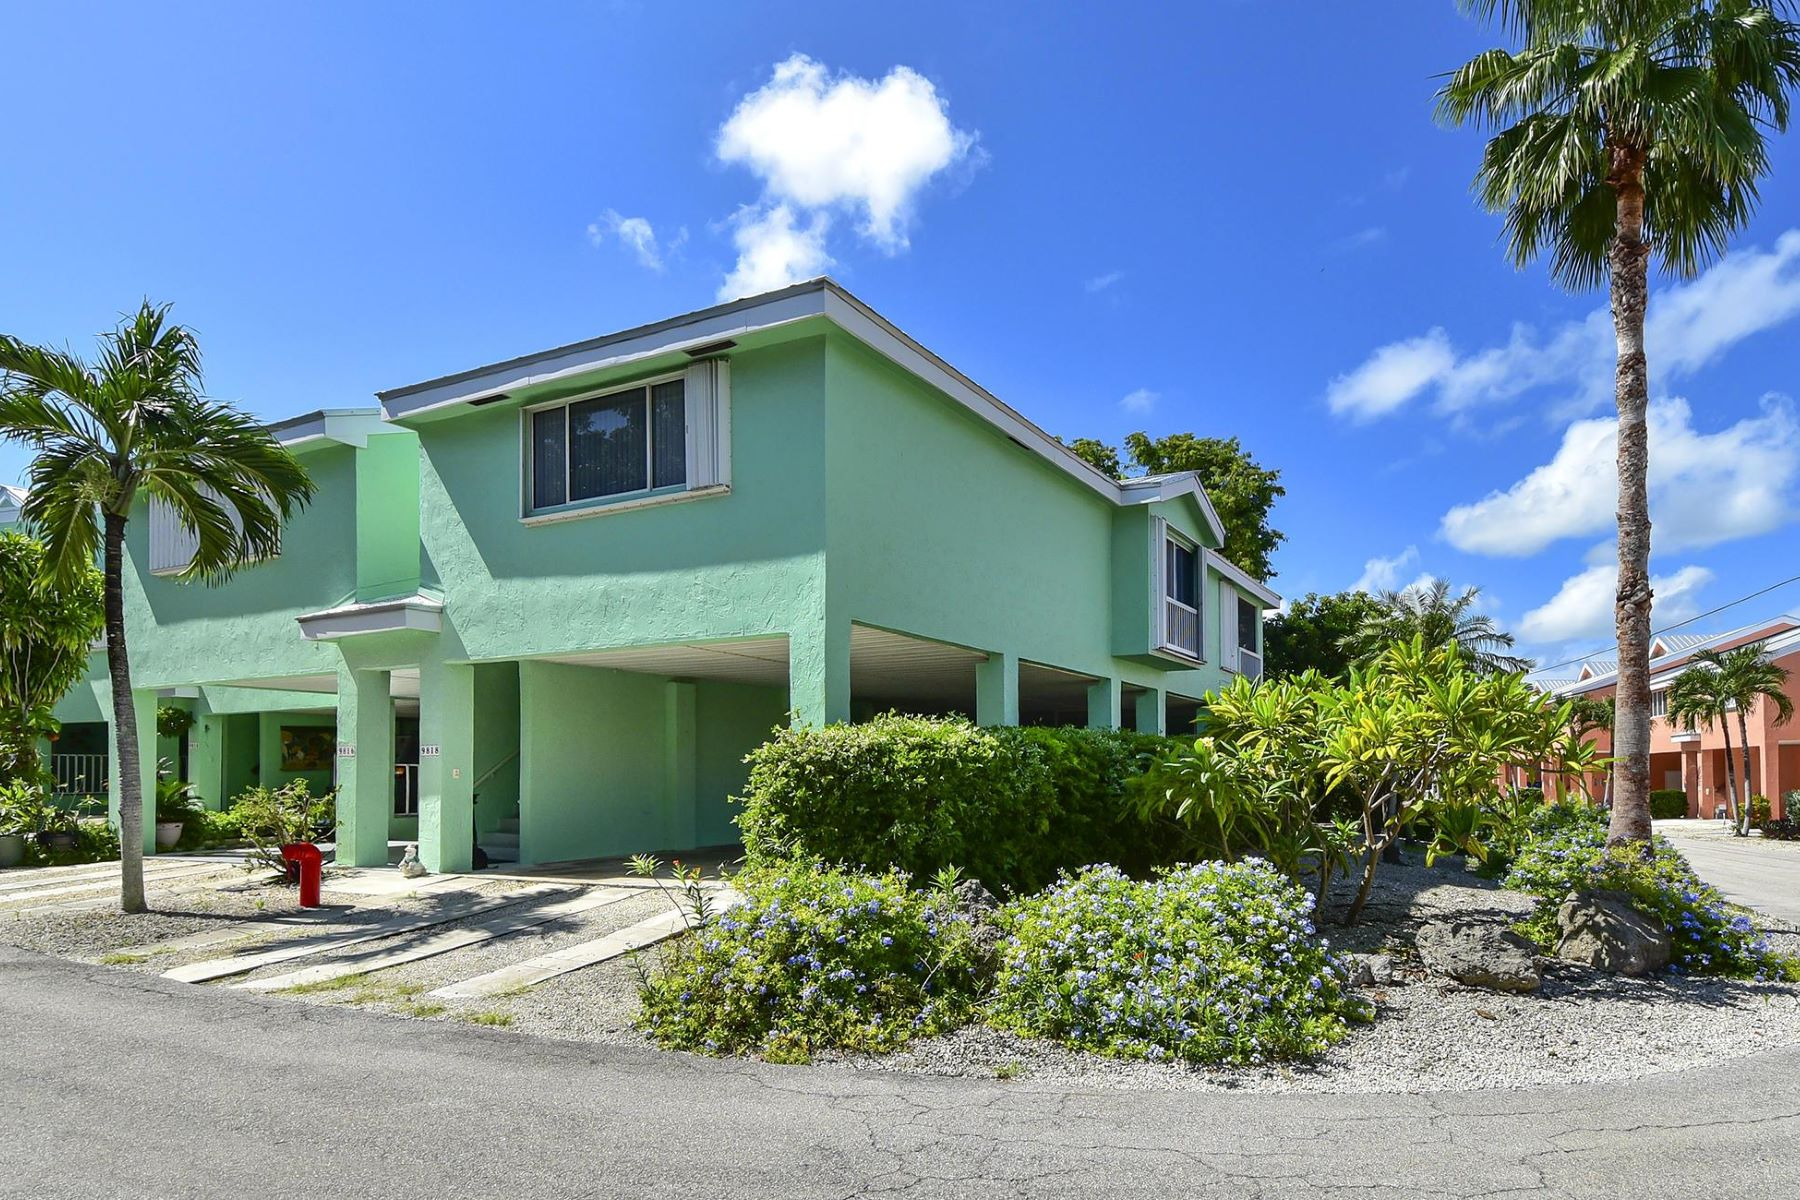 Property for Sale at 9818 Magellan Drive, Key Largo, FL Key Largo, Florida 33037 United States